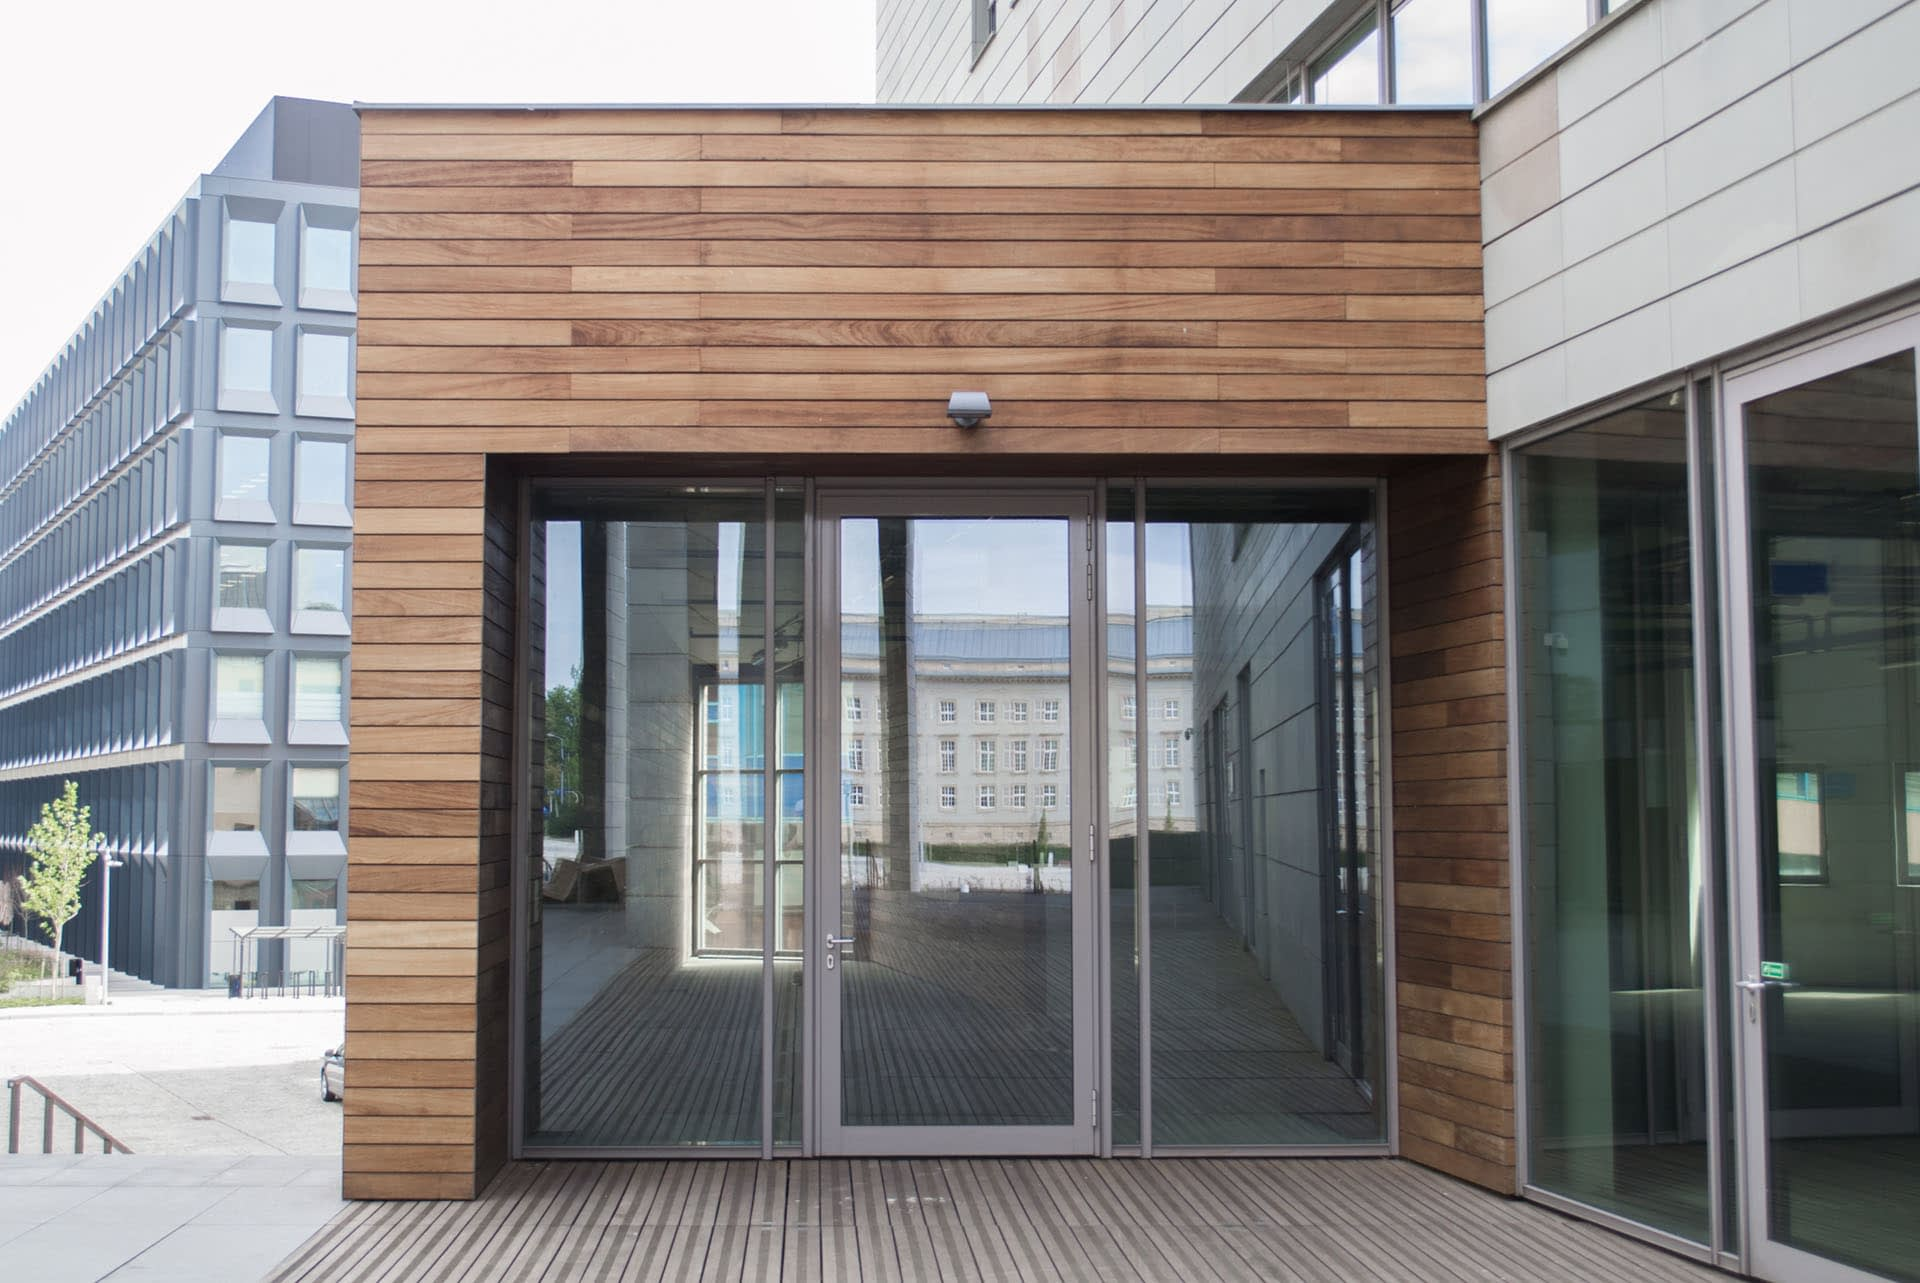 timber-cladding-weatherboards-external-sheet-material-outdoor-property-walls